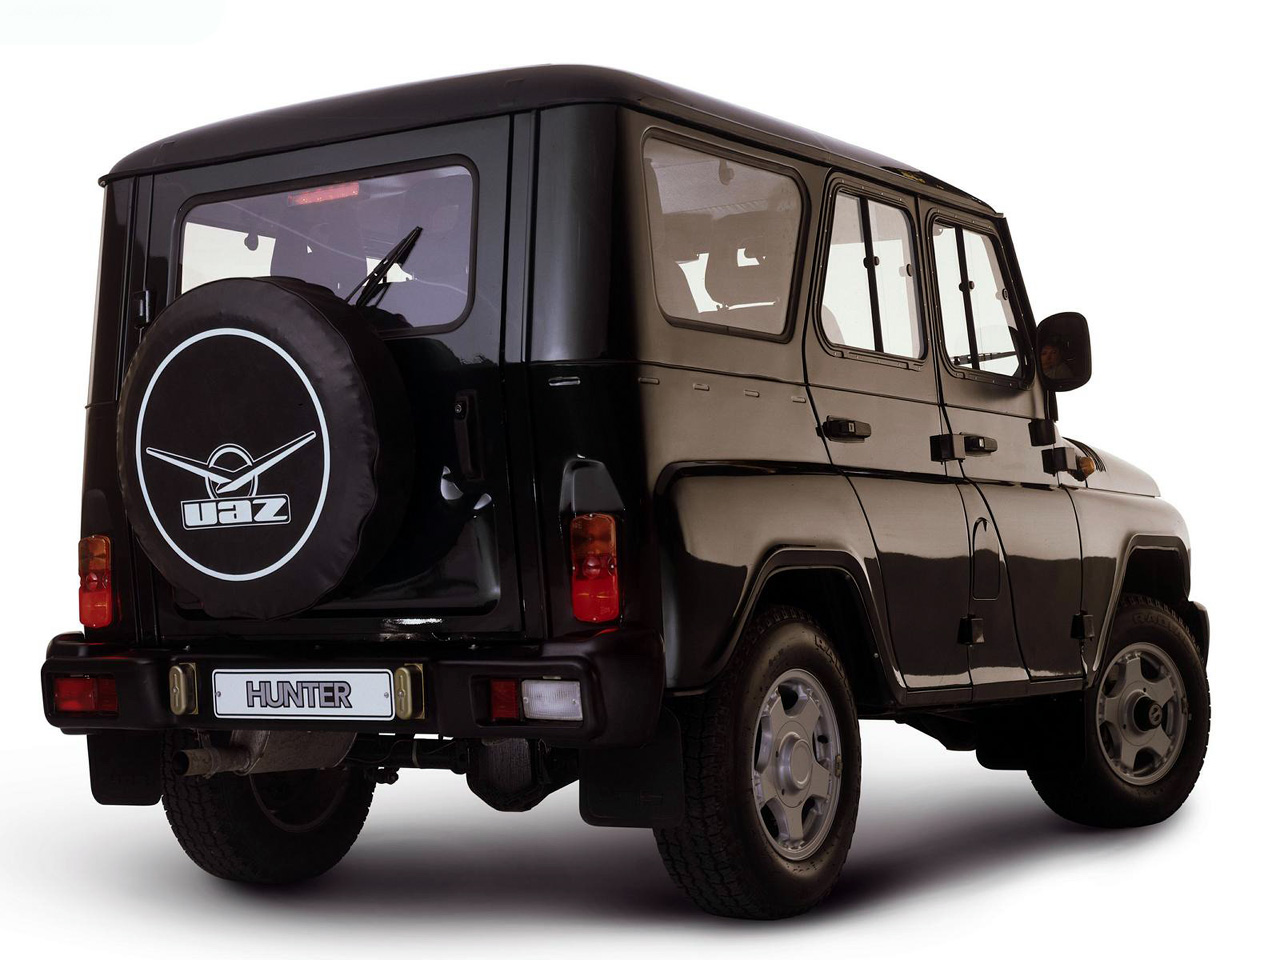 UAZ Hunter SUV 2012